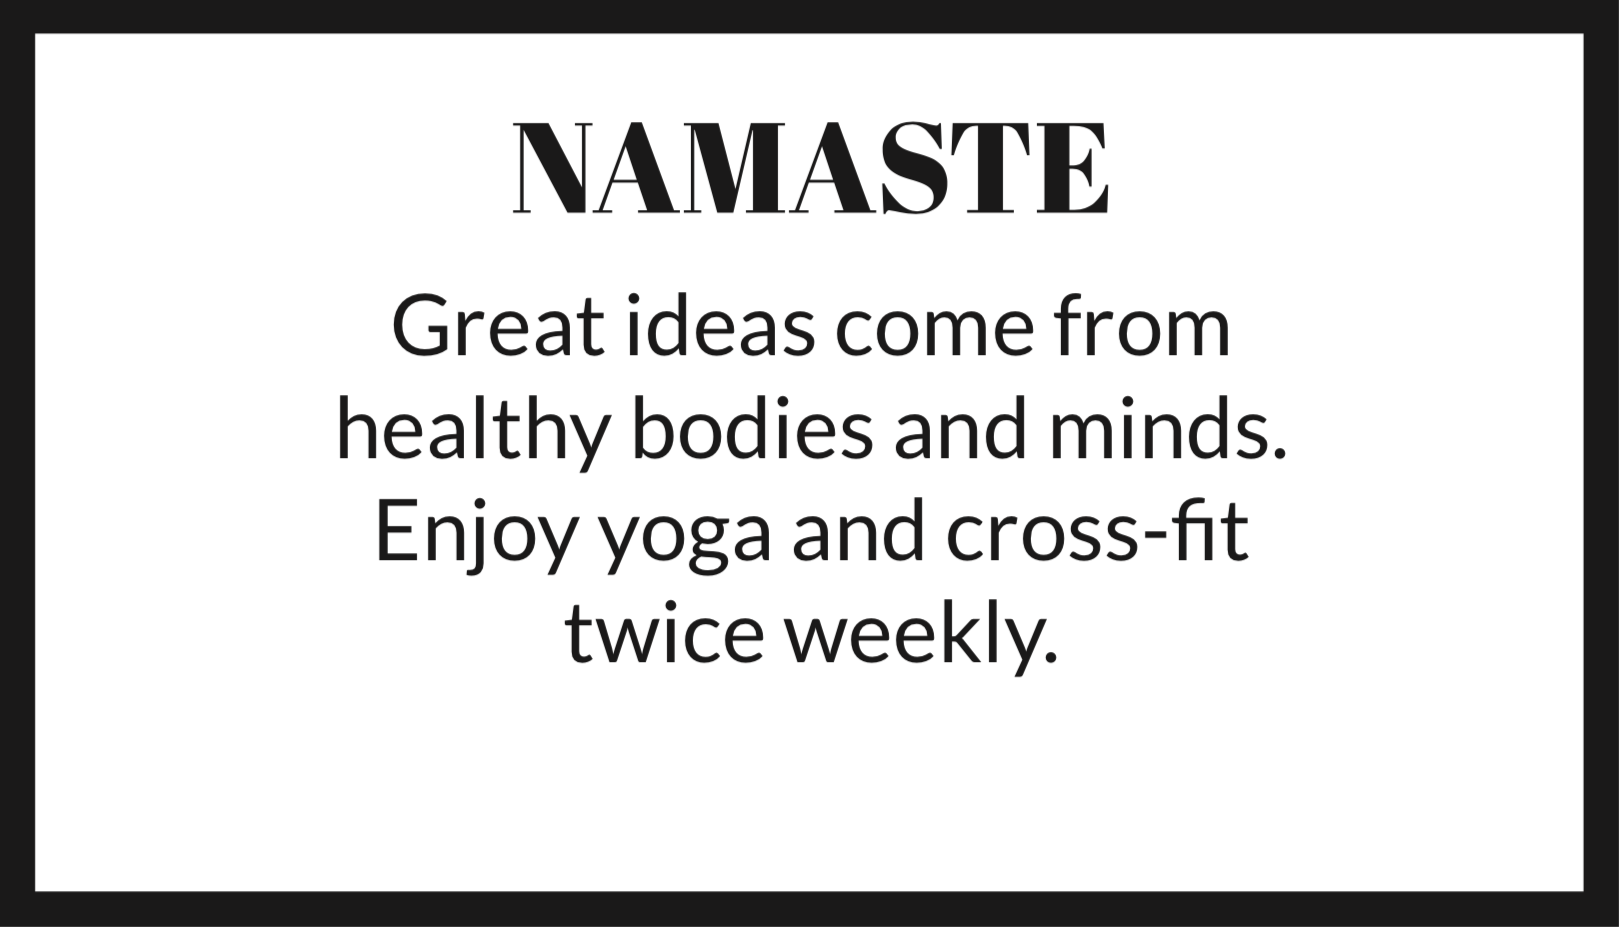 NAMASTE Great ideas come from healthy bodies and minds. Enjoy yoga nad CrossFit twice weekly.